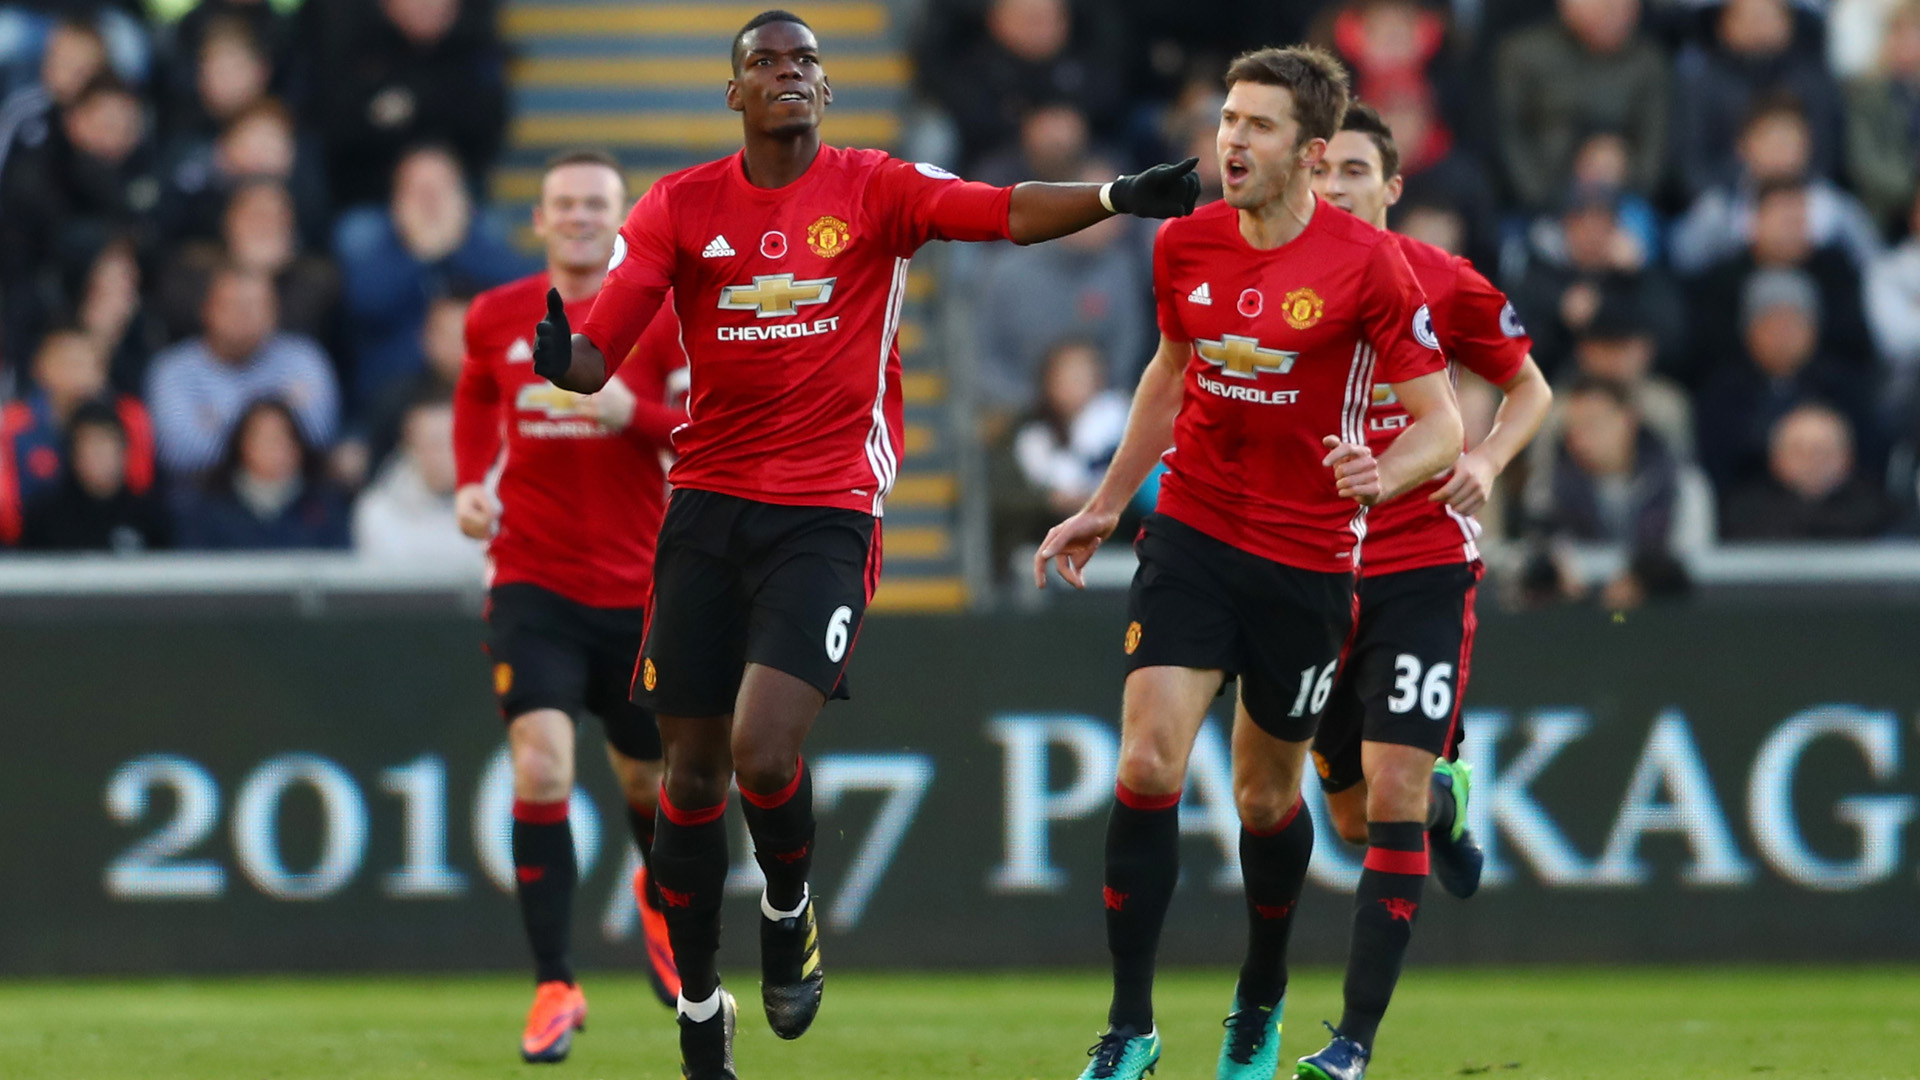 SWANSEA, WALES - NOVEMBER 06: Paul Pogba of Manchester United celebrates scoring his sides first goal with Michael Carrick during the Premier League match between Swansea City and Manchester United at Liberty Stadium on November 6, 2016 in Swansea, Wales.  (Photo by Michael Steele/Getty Images)